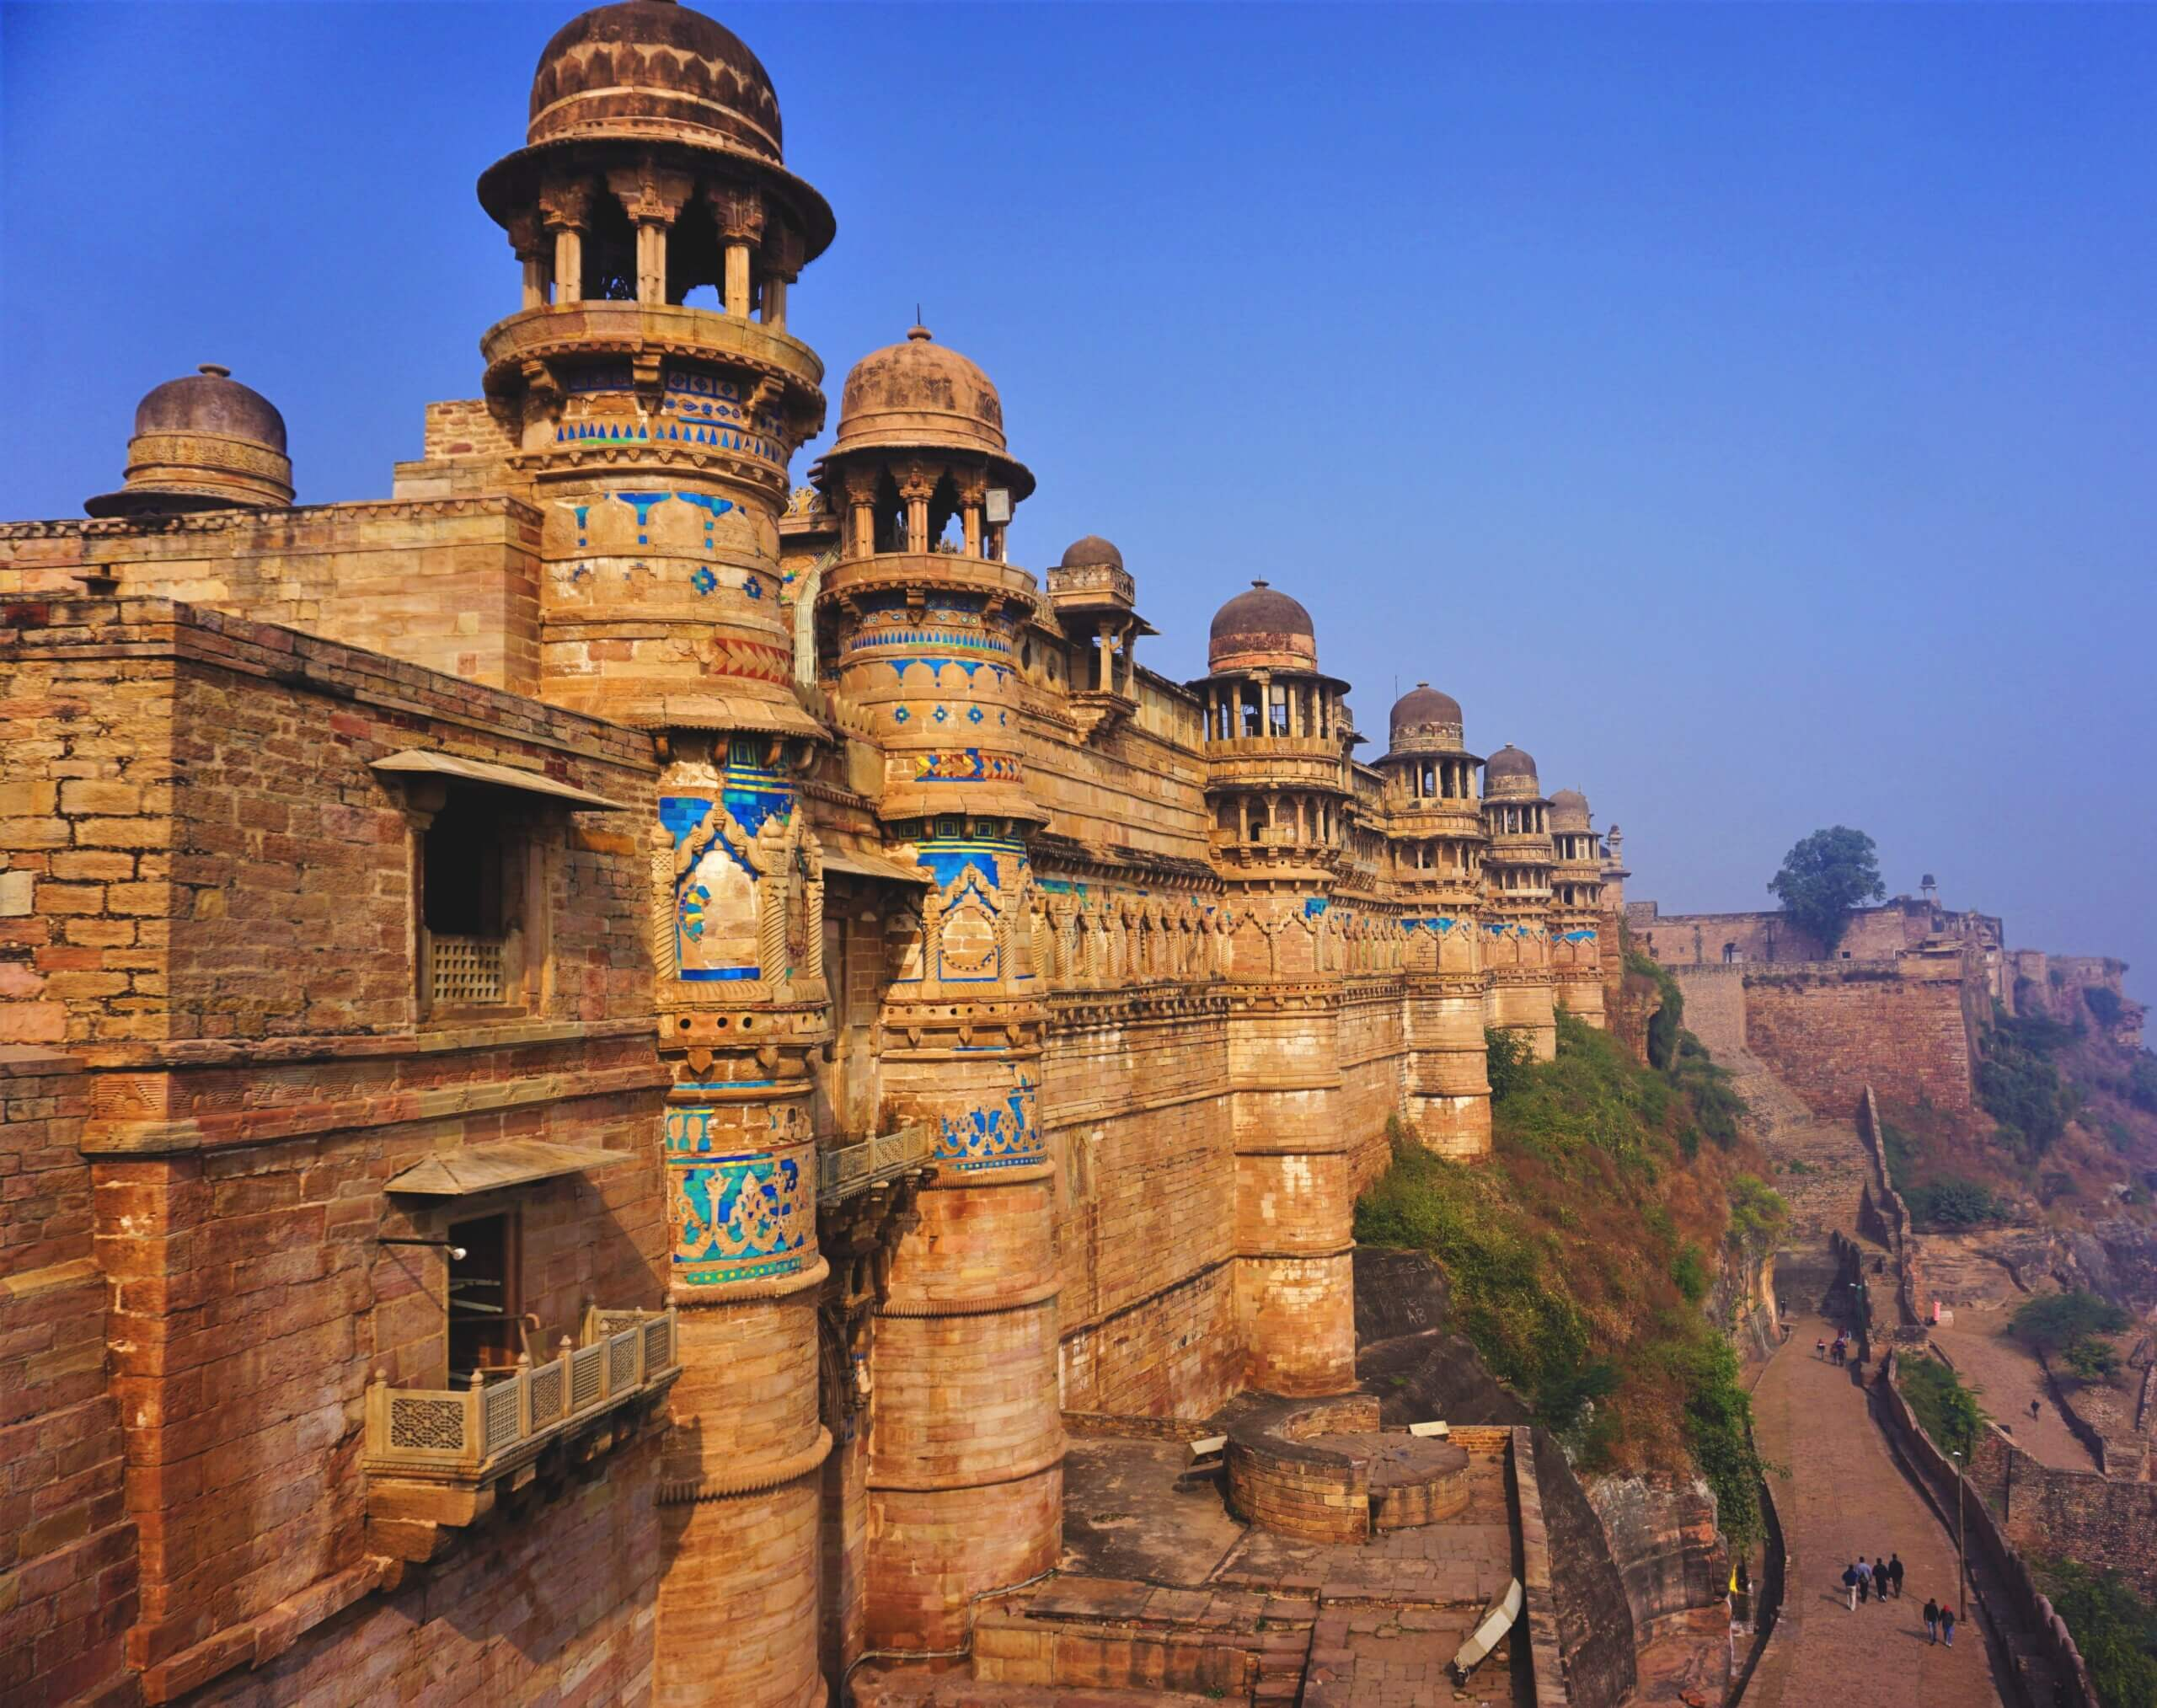 Gwalior Fort built by Raja Maan Singh Tomar Madhya Pradesh India